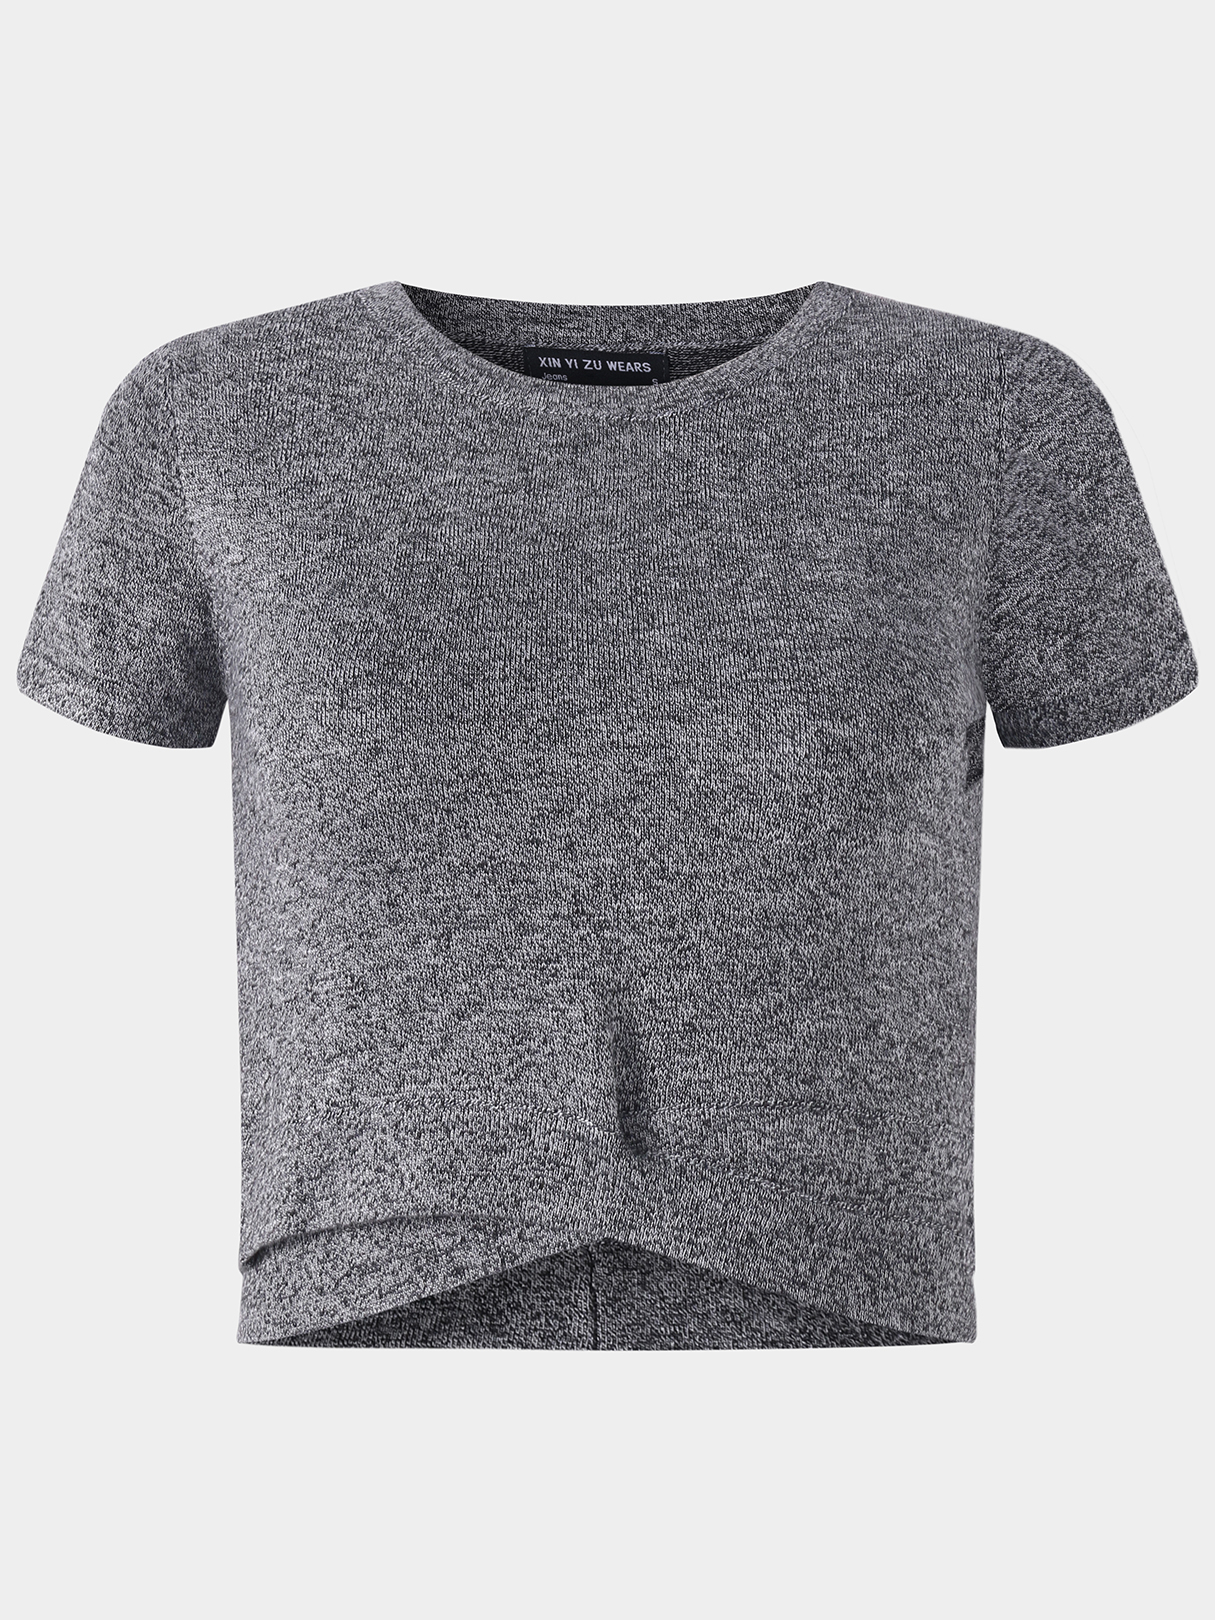 Active Round Neck Cut Out T-shrits in Grey